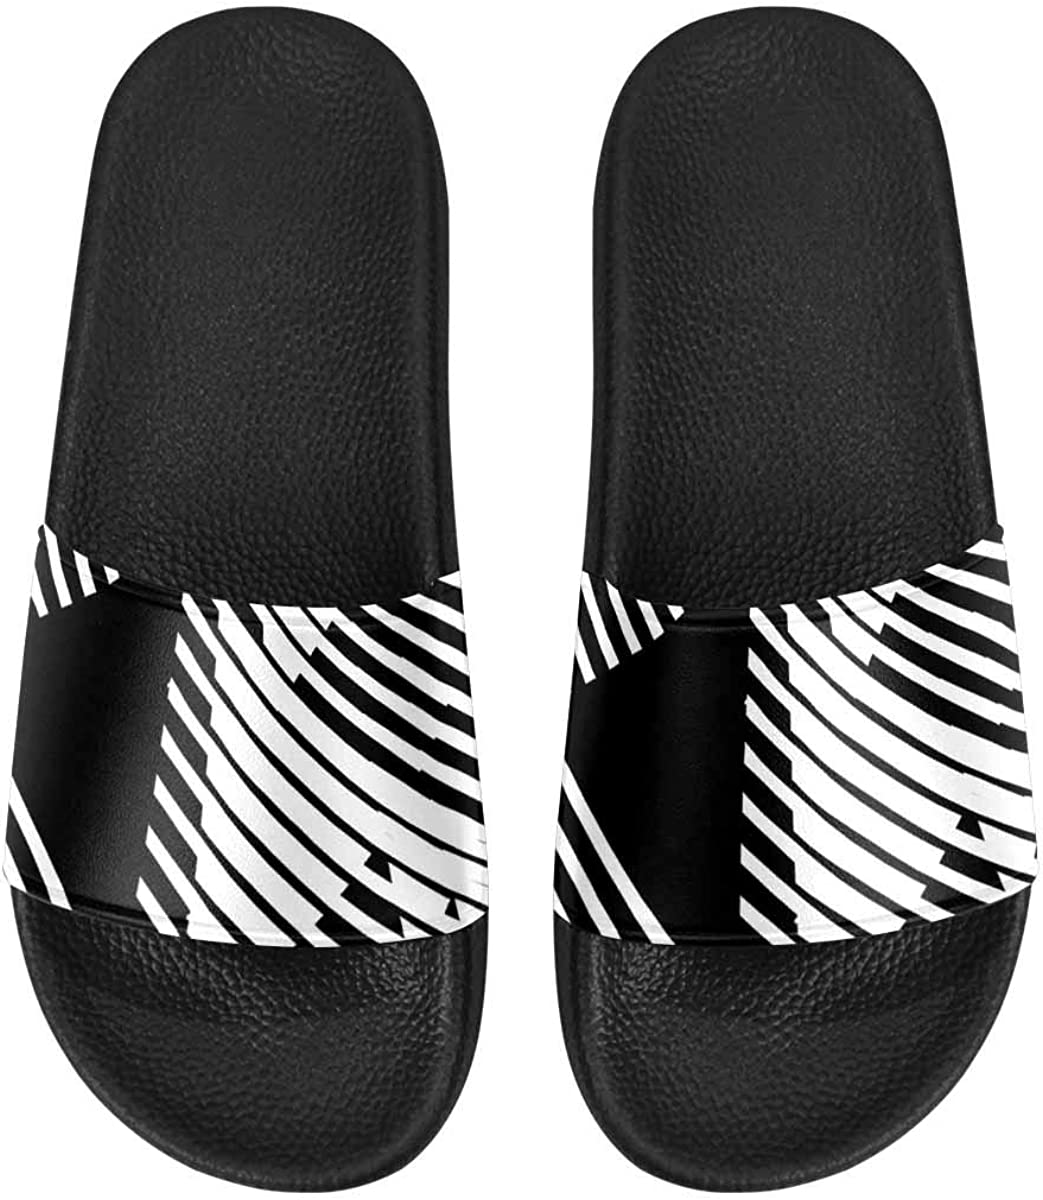 InterestPrint Stylish and Personalized Sandals for Women Wear